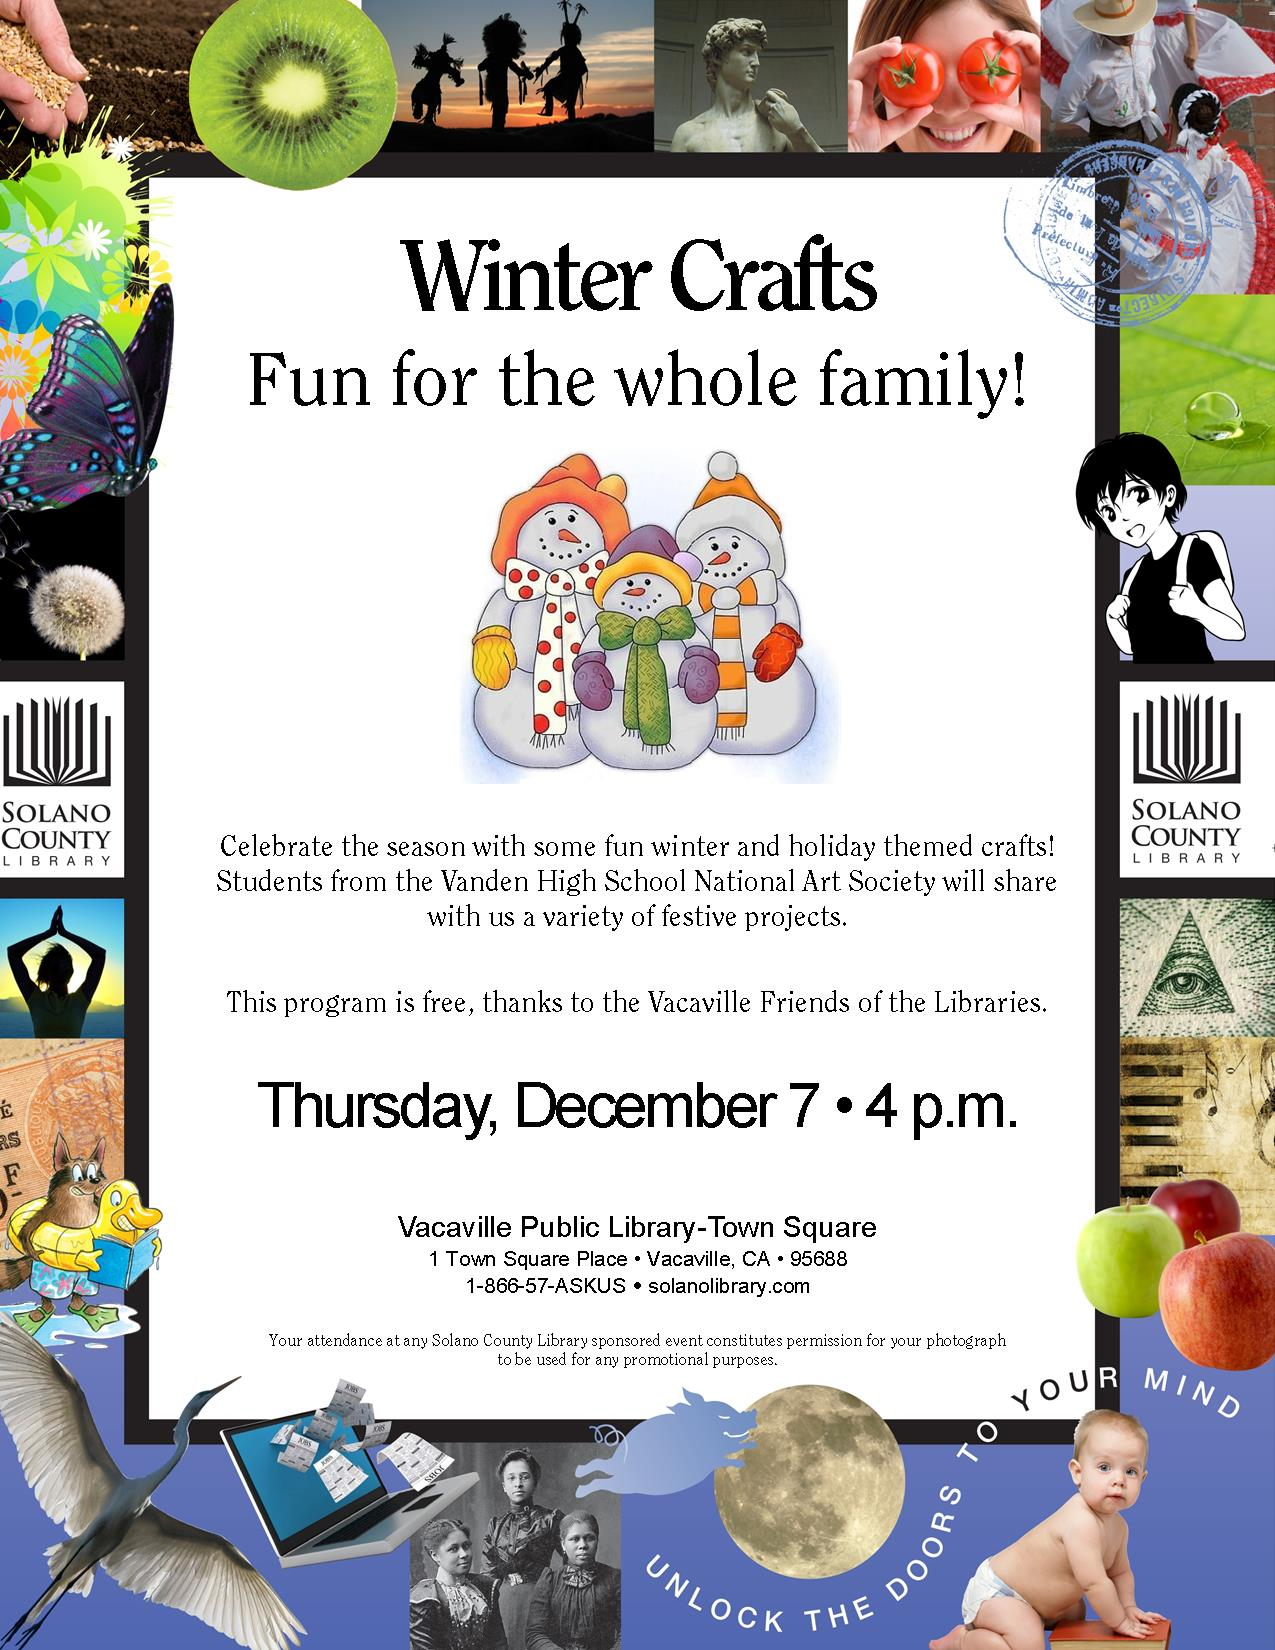 Flyer for upcoming winter crafts event at the Town Square Library